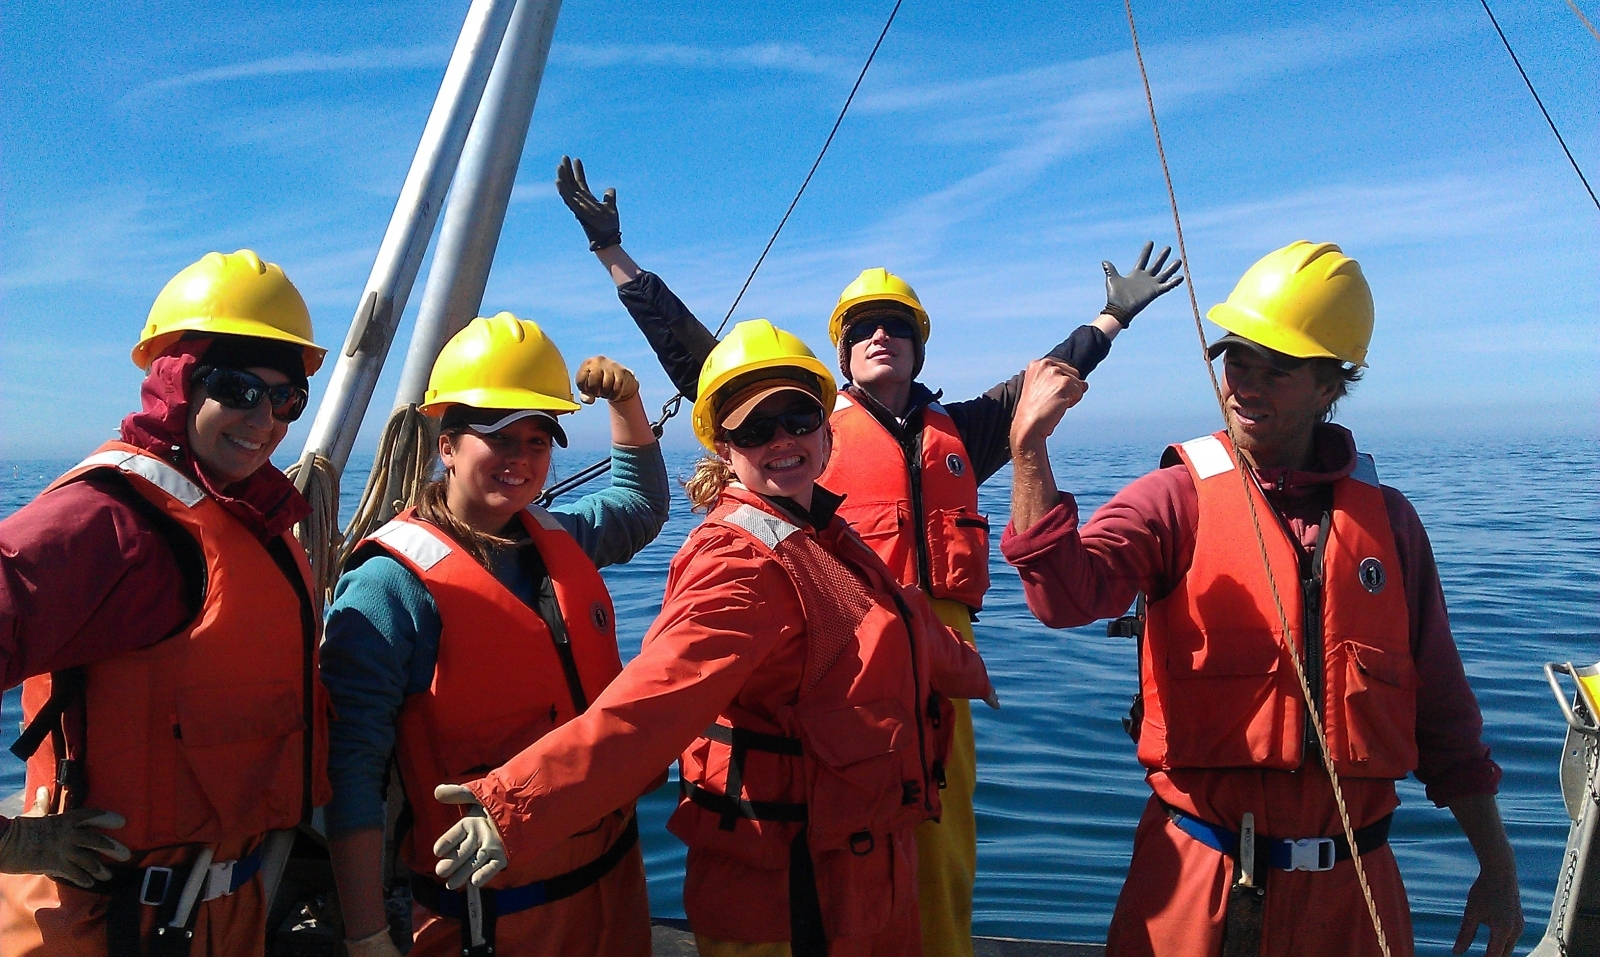 A group of people wearing hard hats and life vests on a boat.